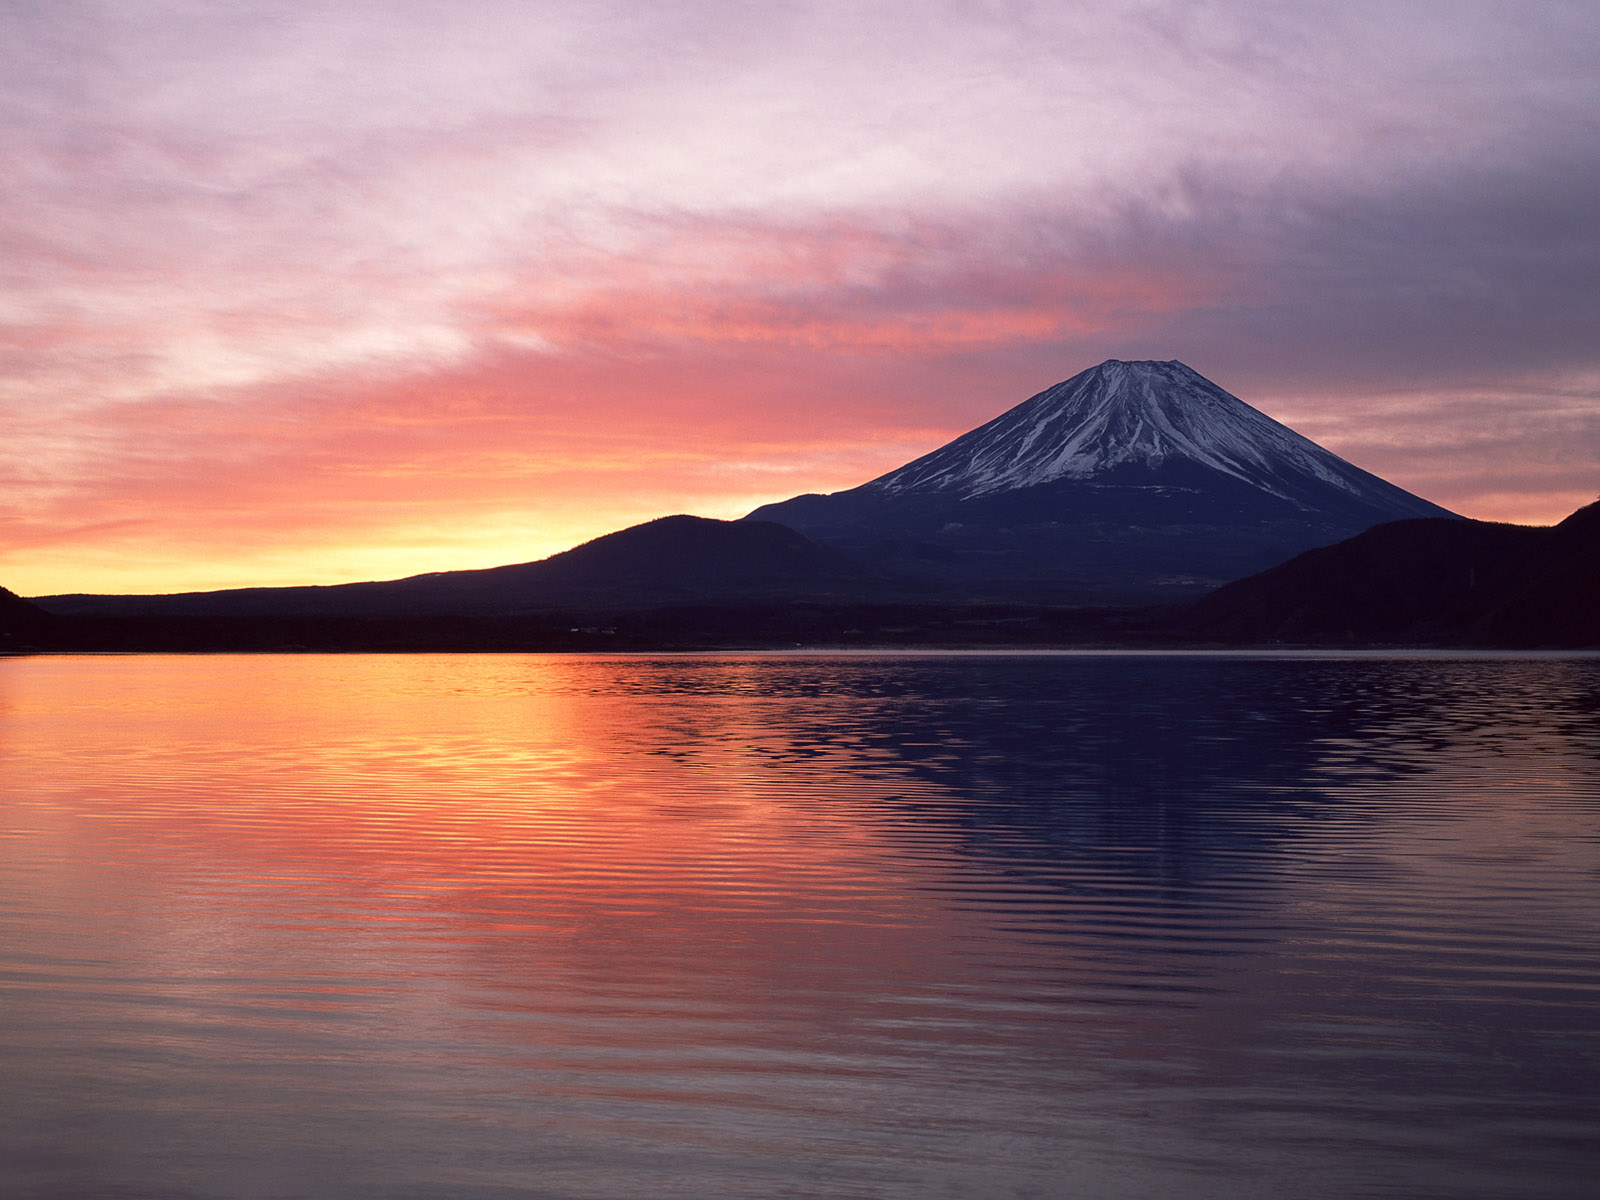 Hilly Areas Of The World Mount Fuji Wallpapers 1600x1200